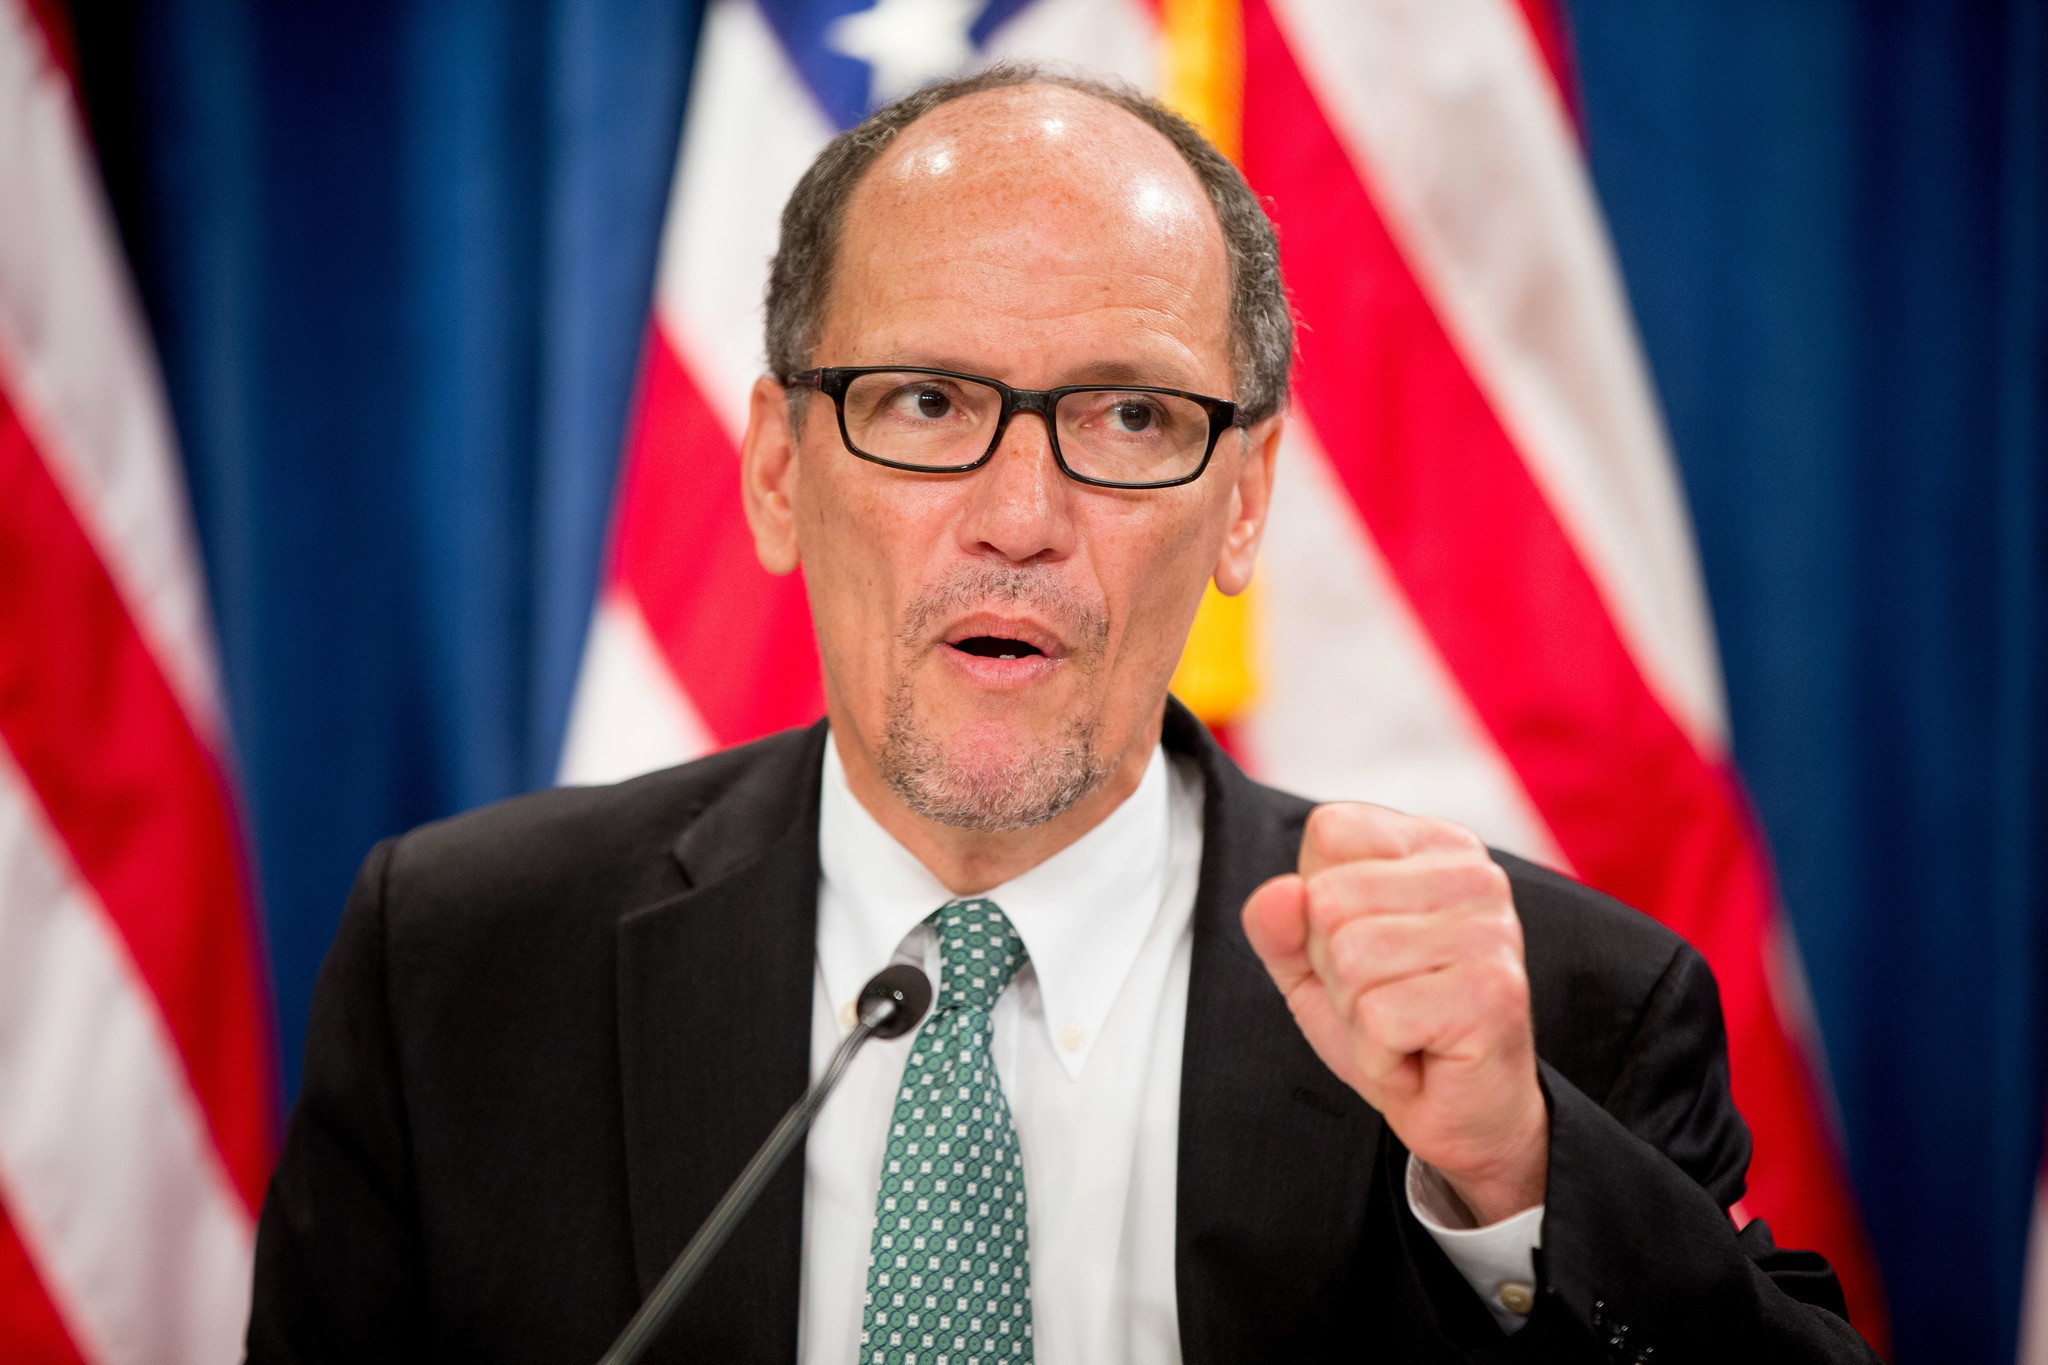 Labor Secretary Tom Perez Will Challenge Rep. Keith Ellison In Race To Be DNC Chair